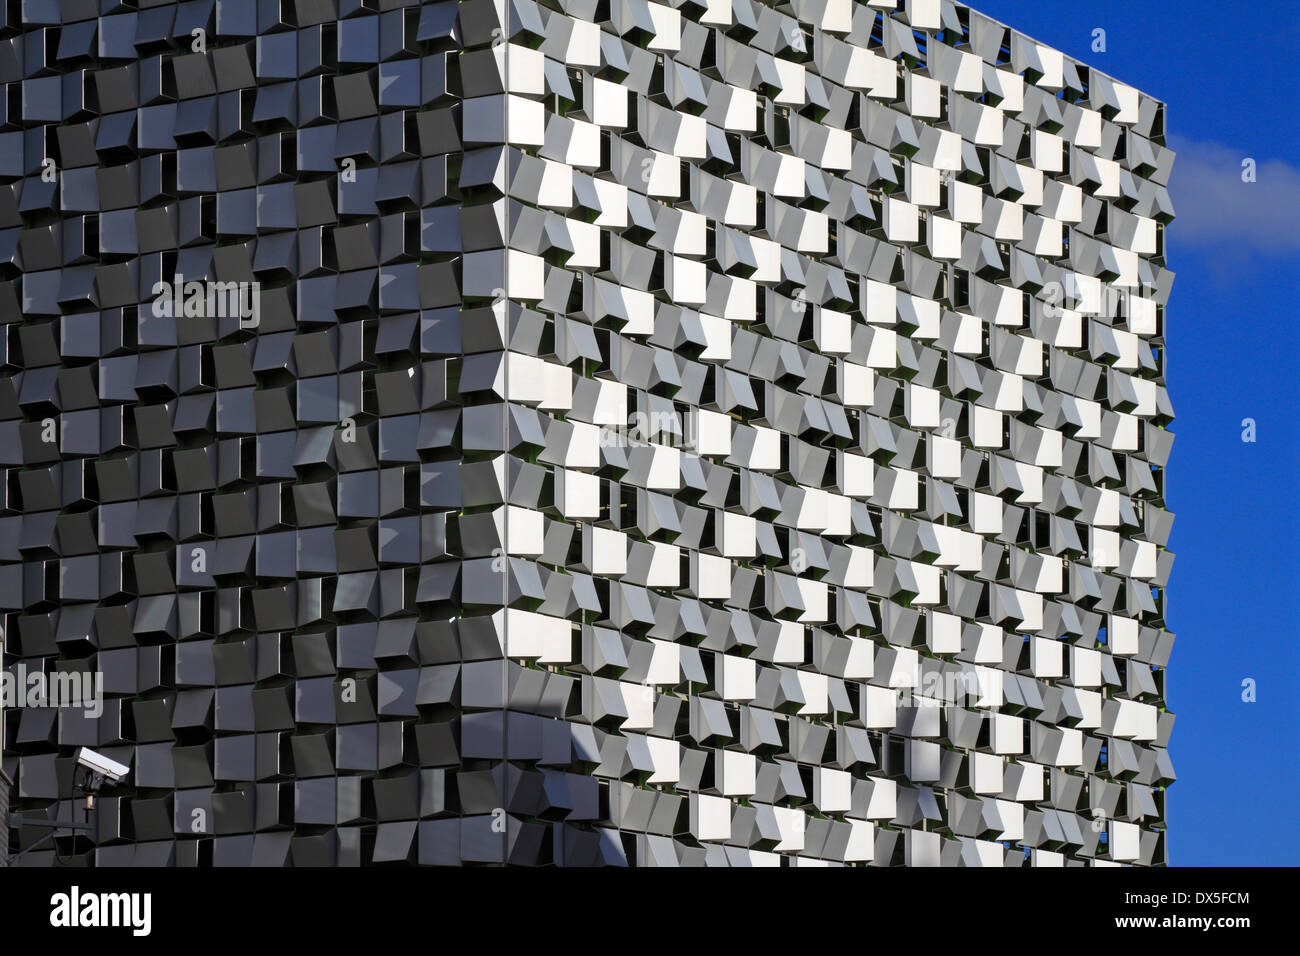 The 'Cheese Grater' multistory car park, St Paul's development, Sheffield, South Yorkshire, England, UK. - Stock Image